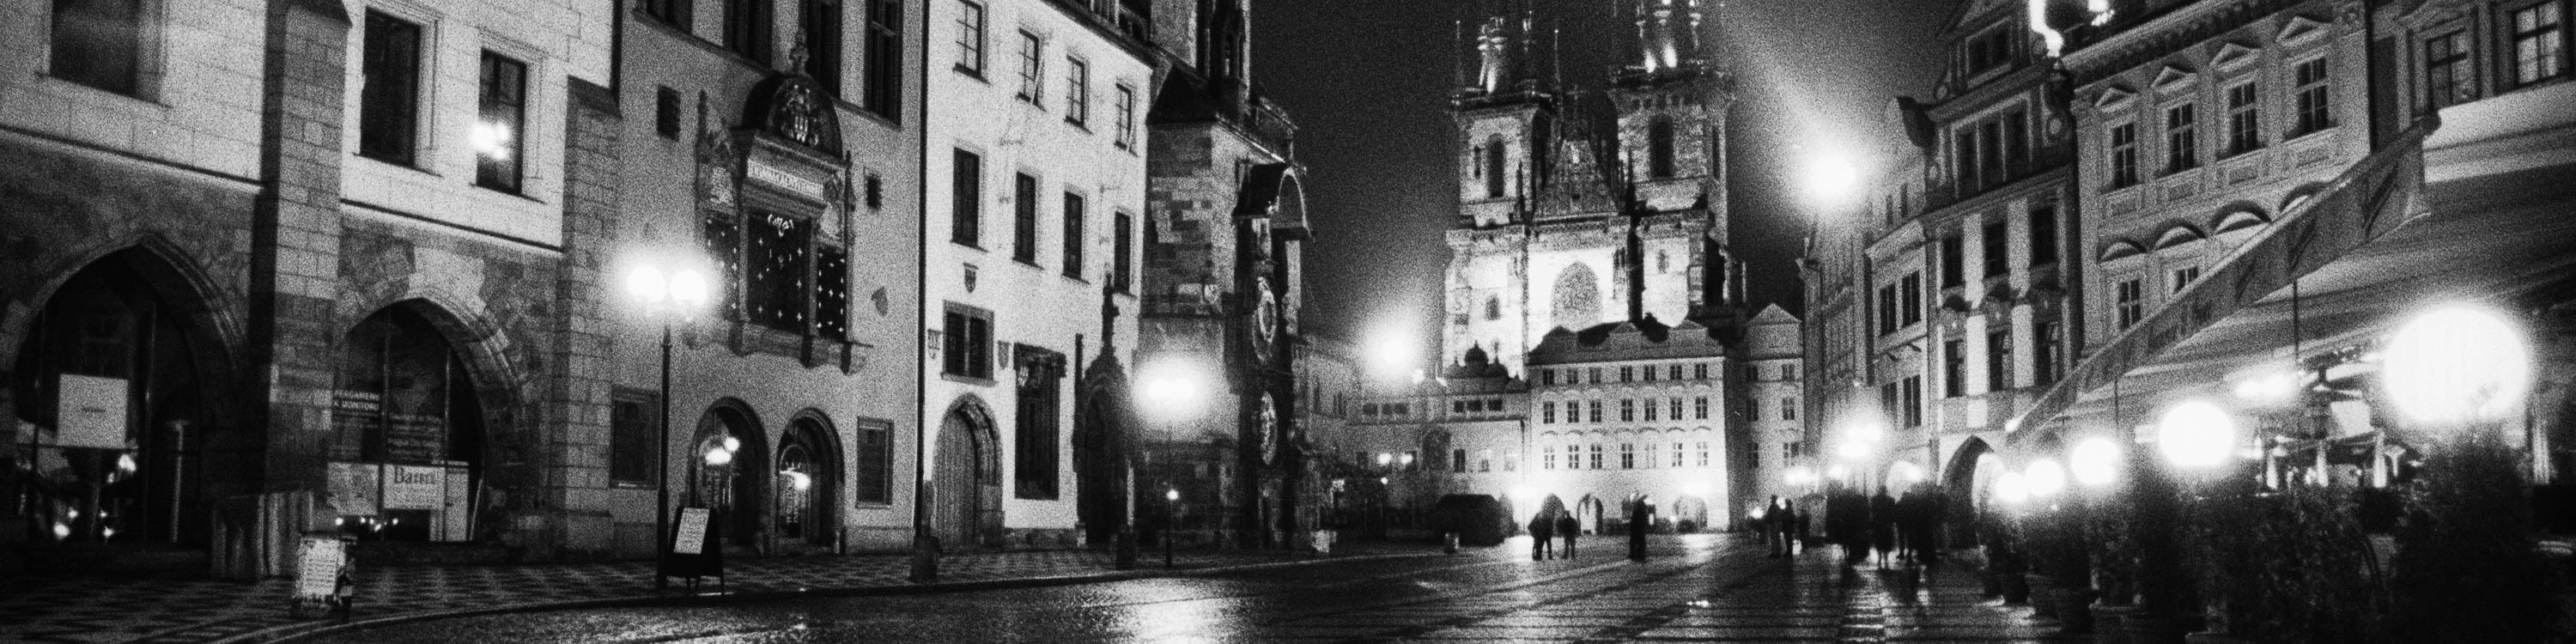 <div class='title'>           Old-Town-Square--Prague--Czech-Republic-Prague-646-25-BW-ASB-yrxqqc         </div>